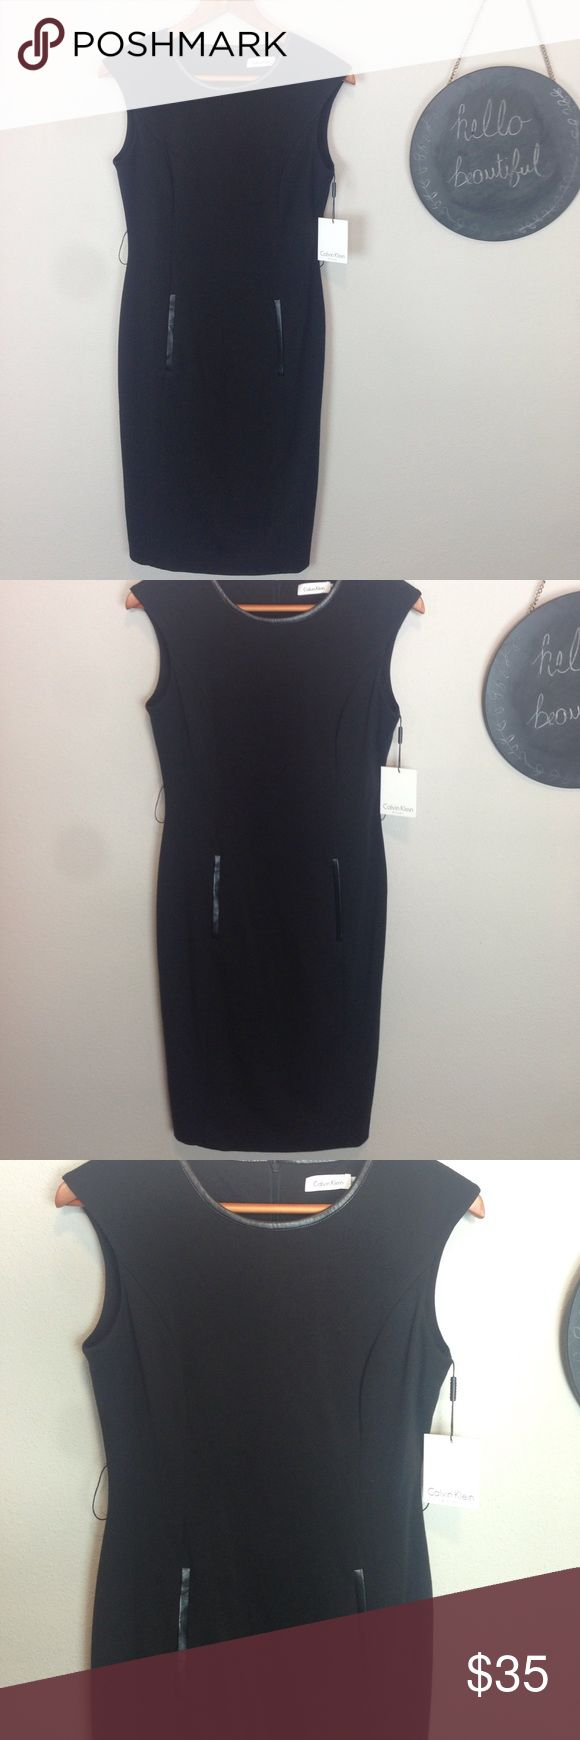 Calvin Klein Black Dress Size 4 *missing Belt NWTs 77% polyester, 20% Rayon, and 3% spandex. Dry clean. Has tag attached but is missing Belt. You could probably cut the belt loops off easily! Calvin Klein Dresses